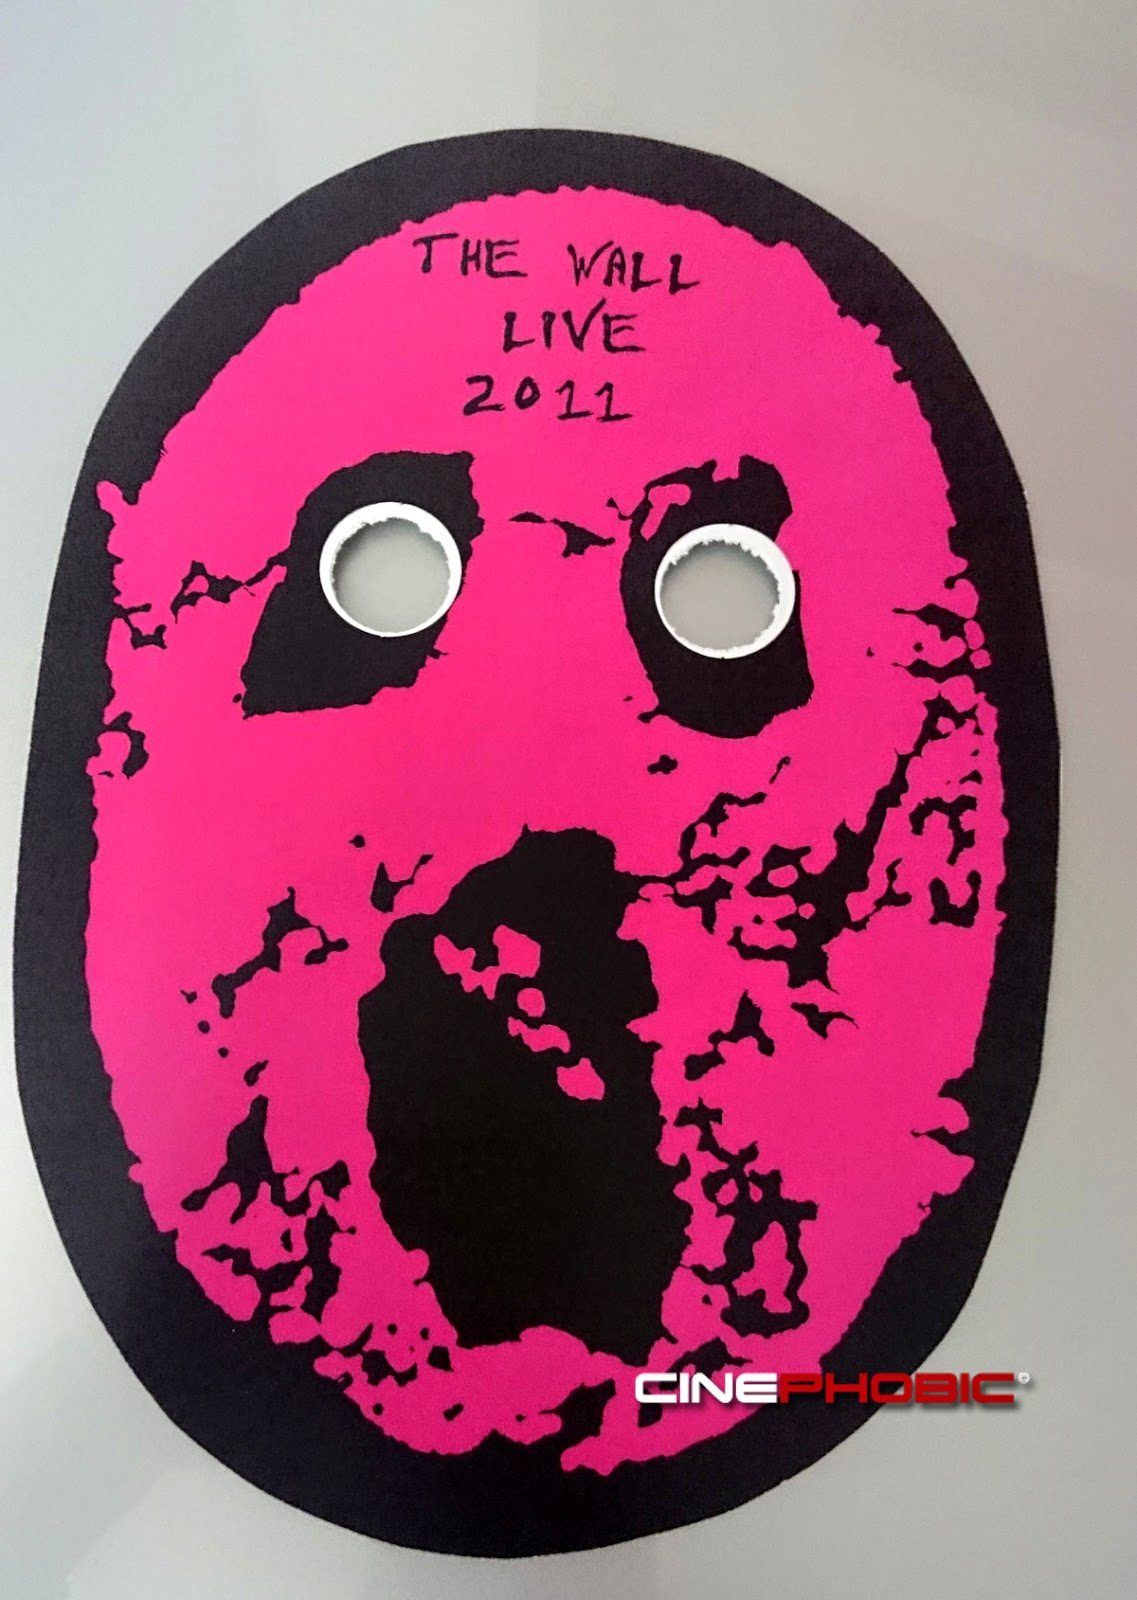 INFO One Of Last 40 Pieces Made For The Concert Wall Live 2011 Numbered